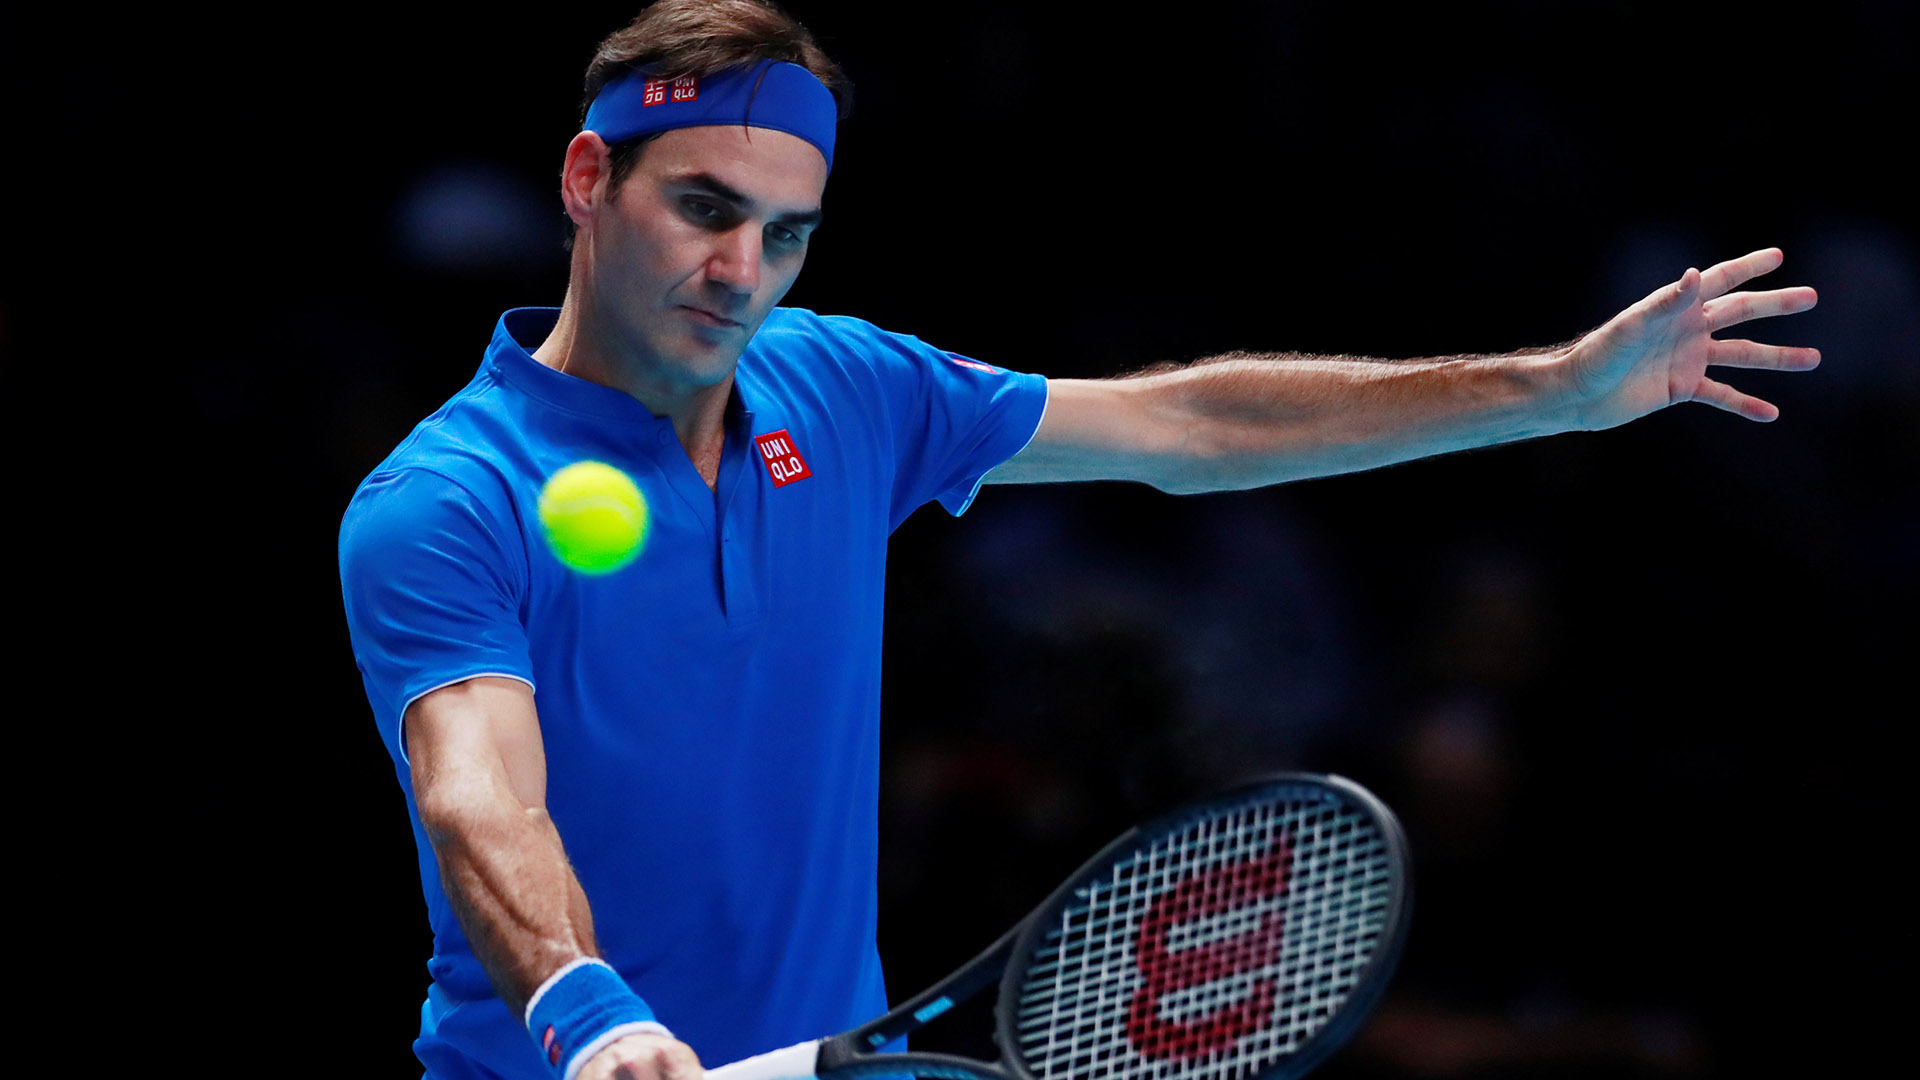 Tennis – ATP Finals – The O2, London, Britain – November 17, 2018 Switzerland's Roger Federer in action during his semi final match against Germany's Alexander Zverev Action Images via Reuters/Andrew Couldridge